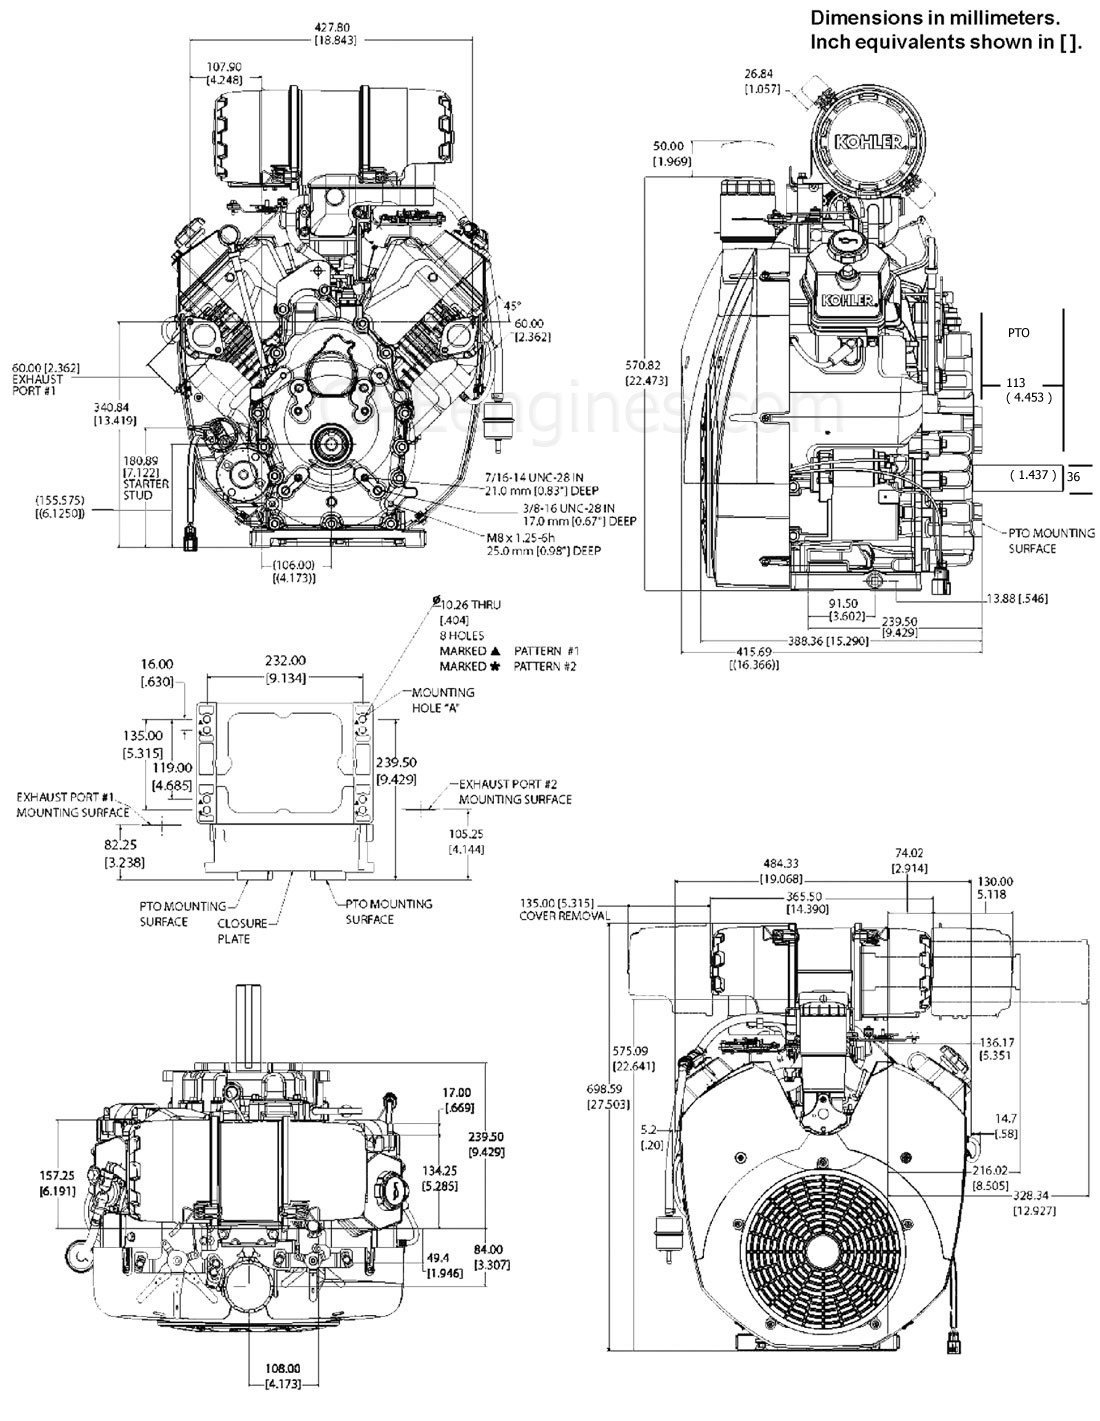 CH980_drawings ch940 ch960 ch980 ch1000 drawings kohler engines and parts store kohler ch23s wiring diagram at n-0.co